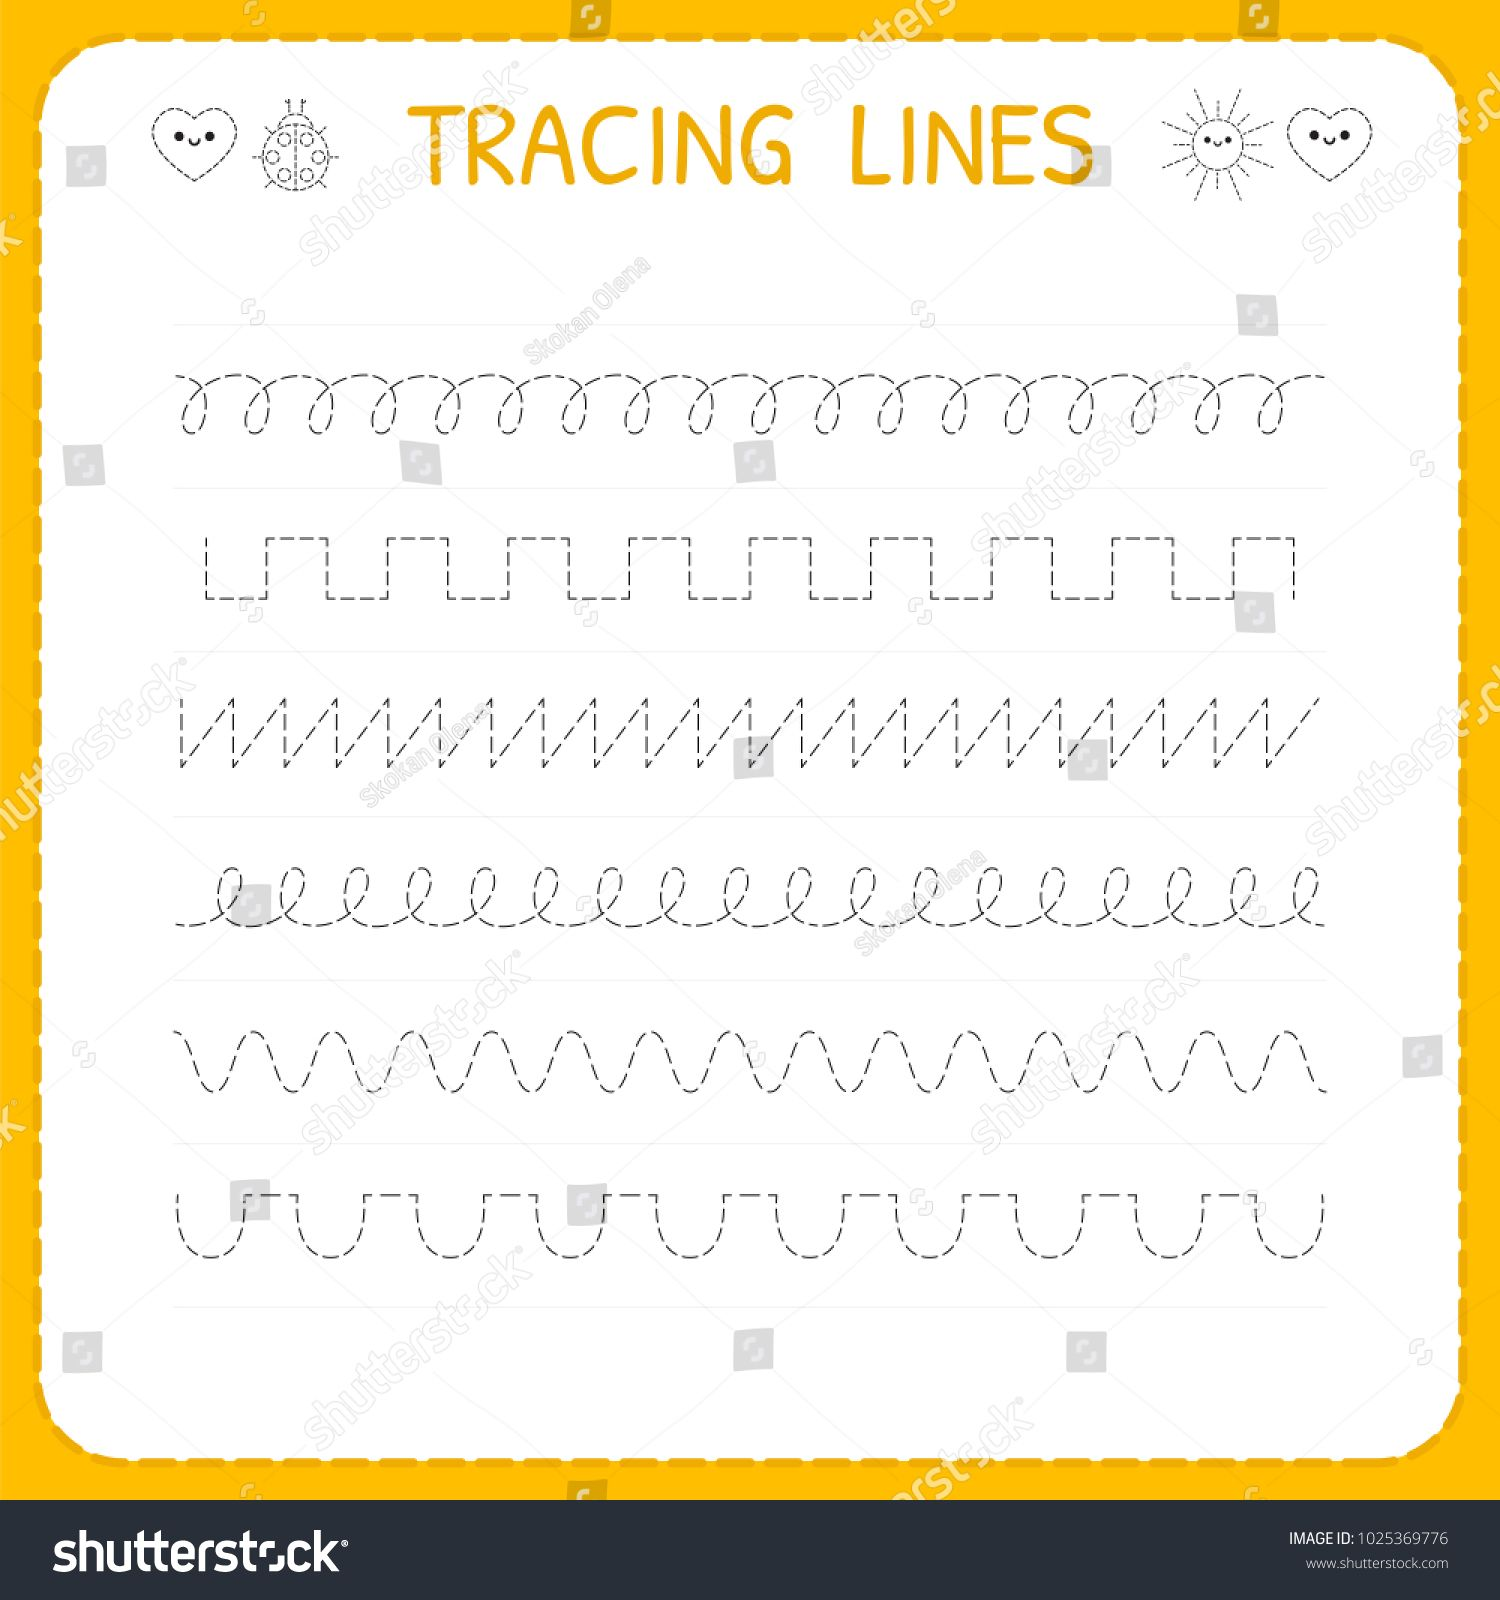 Trace Line Worksheet For Kids Basic Writing Working Pages For Children Preschool Or Worksheets For Kids Kindergarten Worksheets Tracing Worksheets Preschool [ 1600 x 1500 Pixel ]